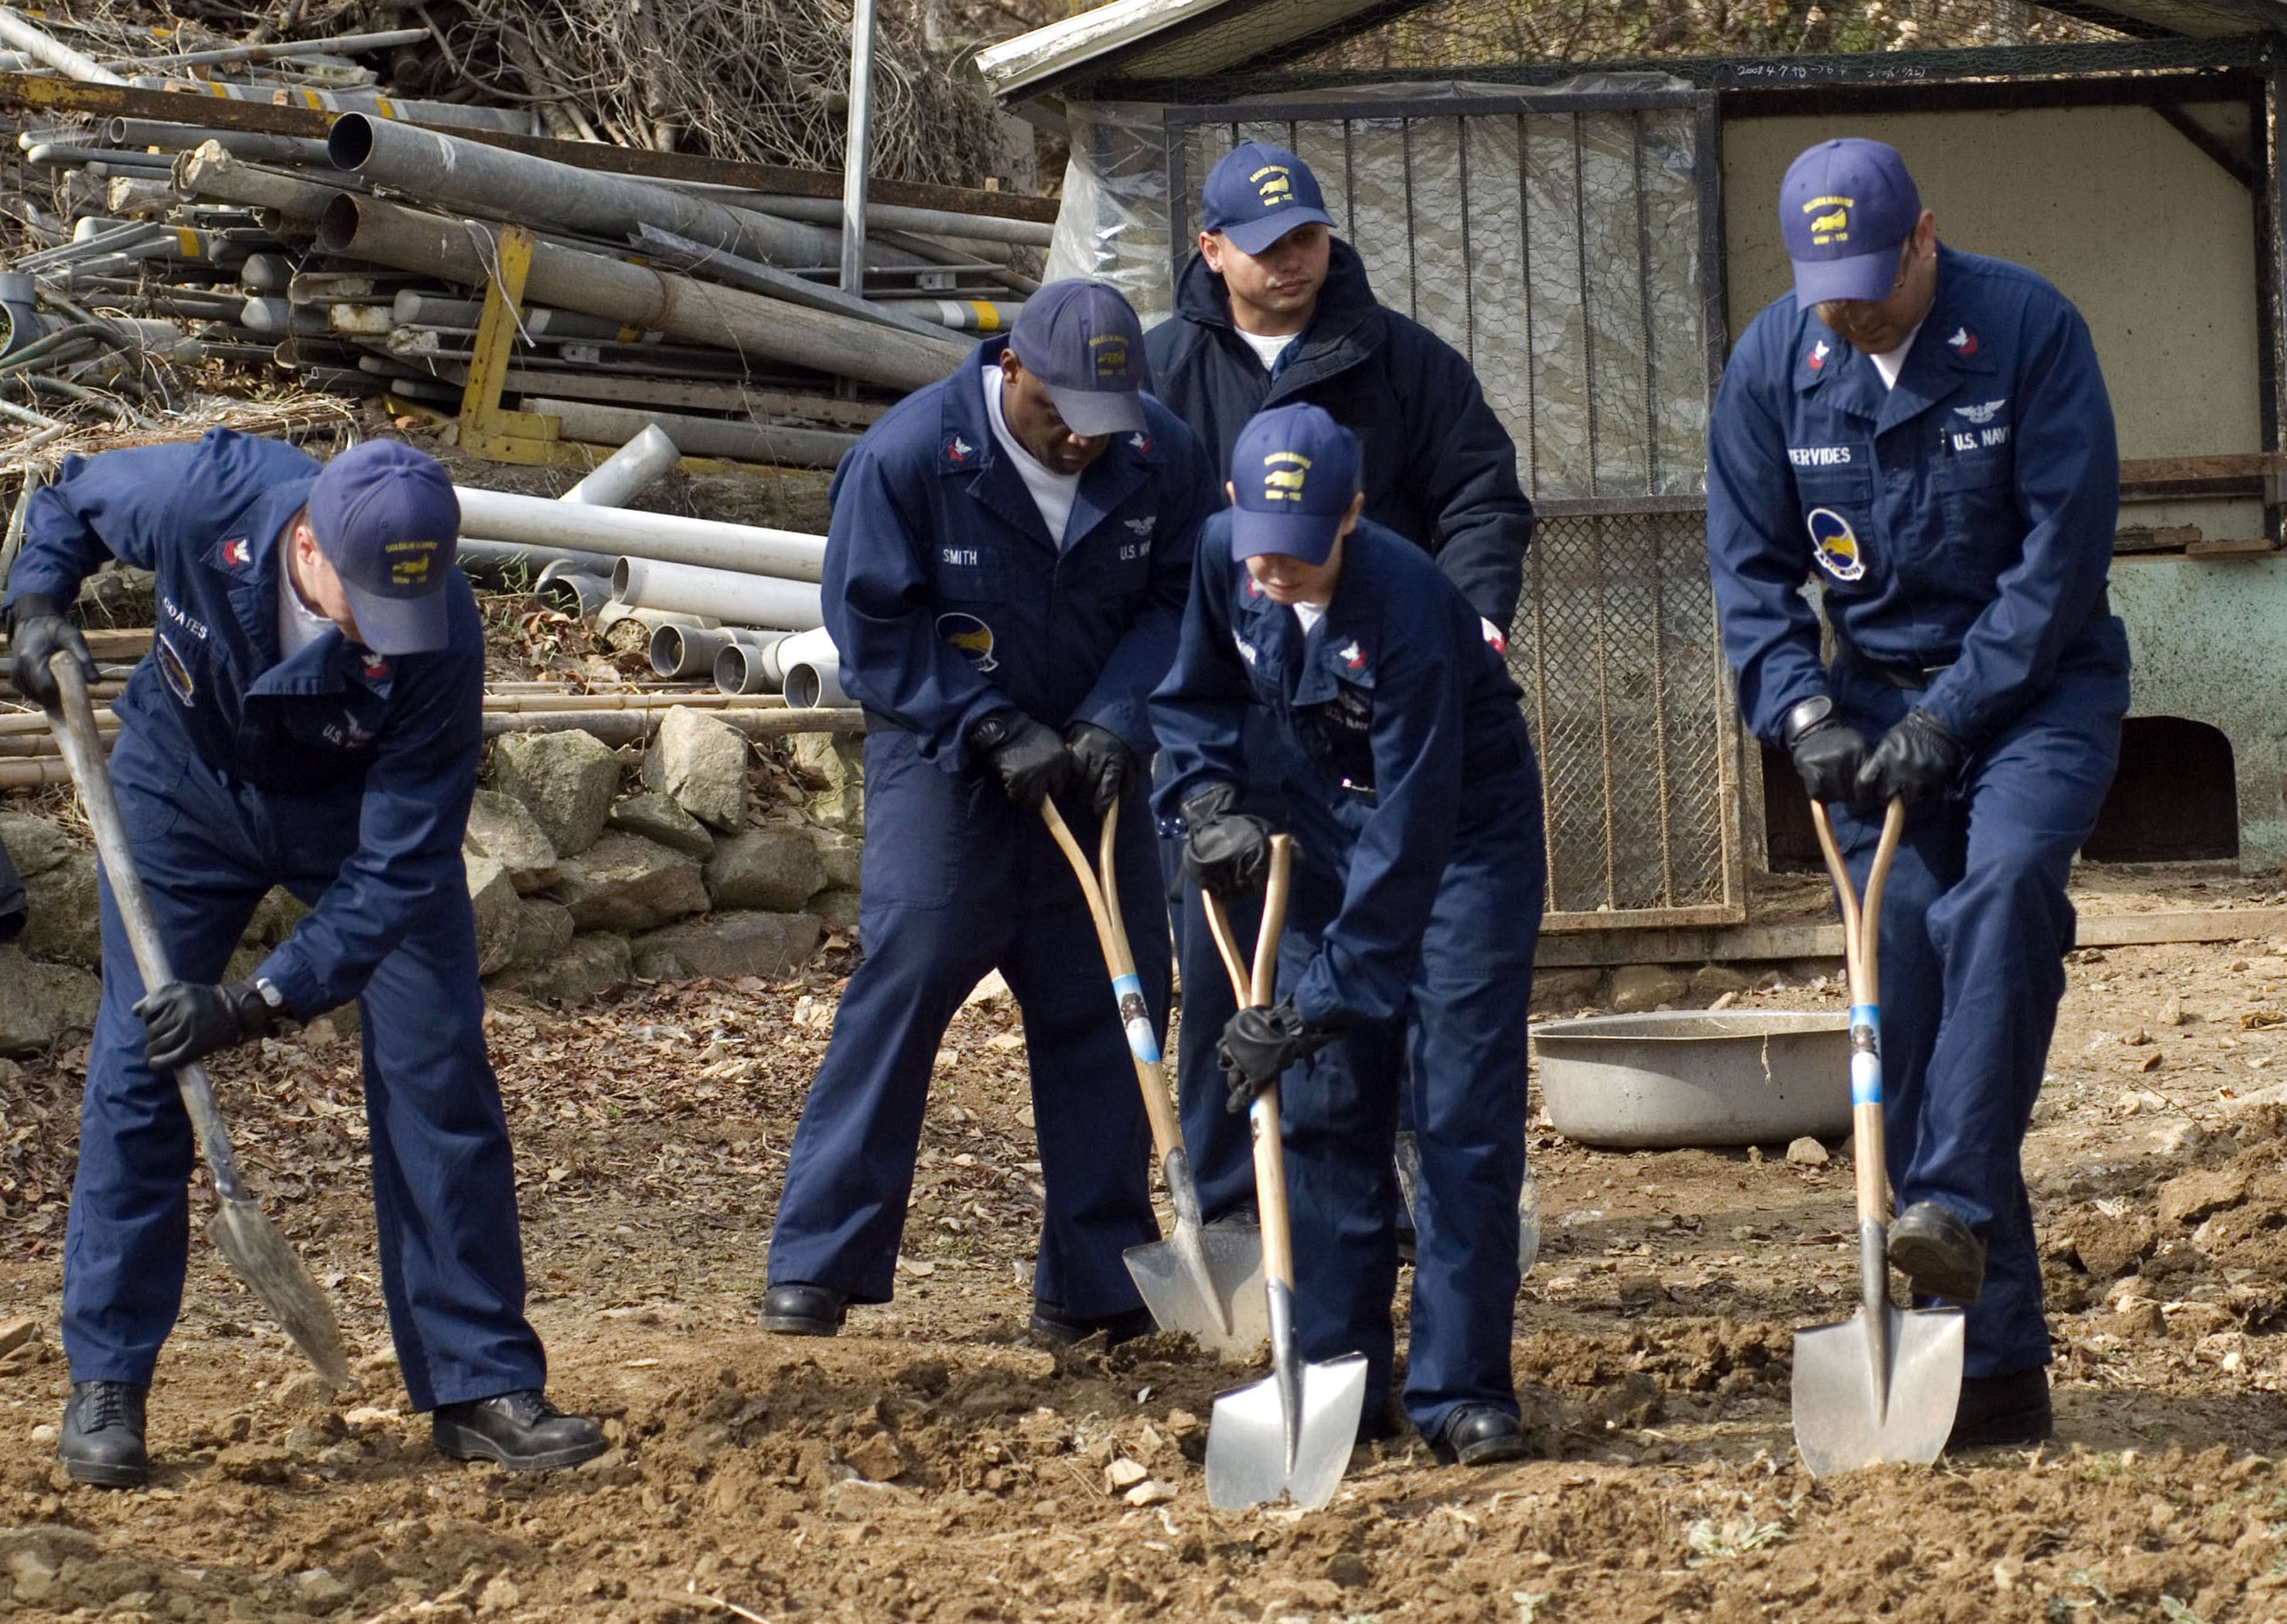 File us navy 090312 n 0673m 005 sailors dig up rocks and for Preparation of soil wikipedia